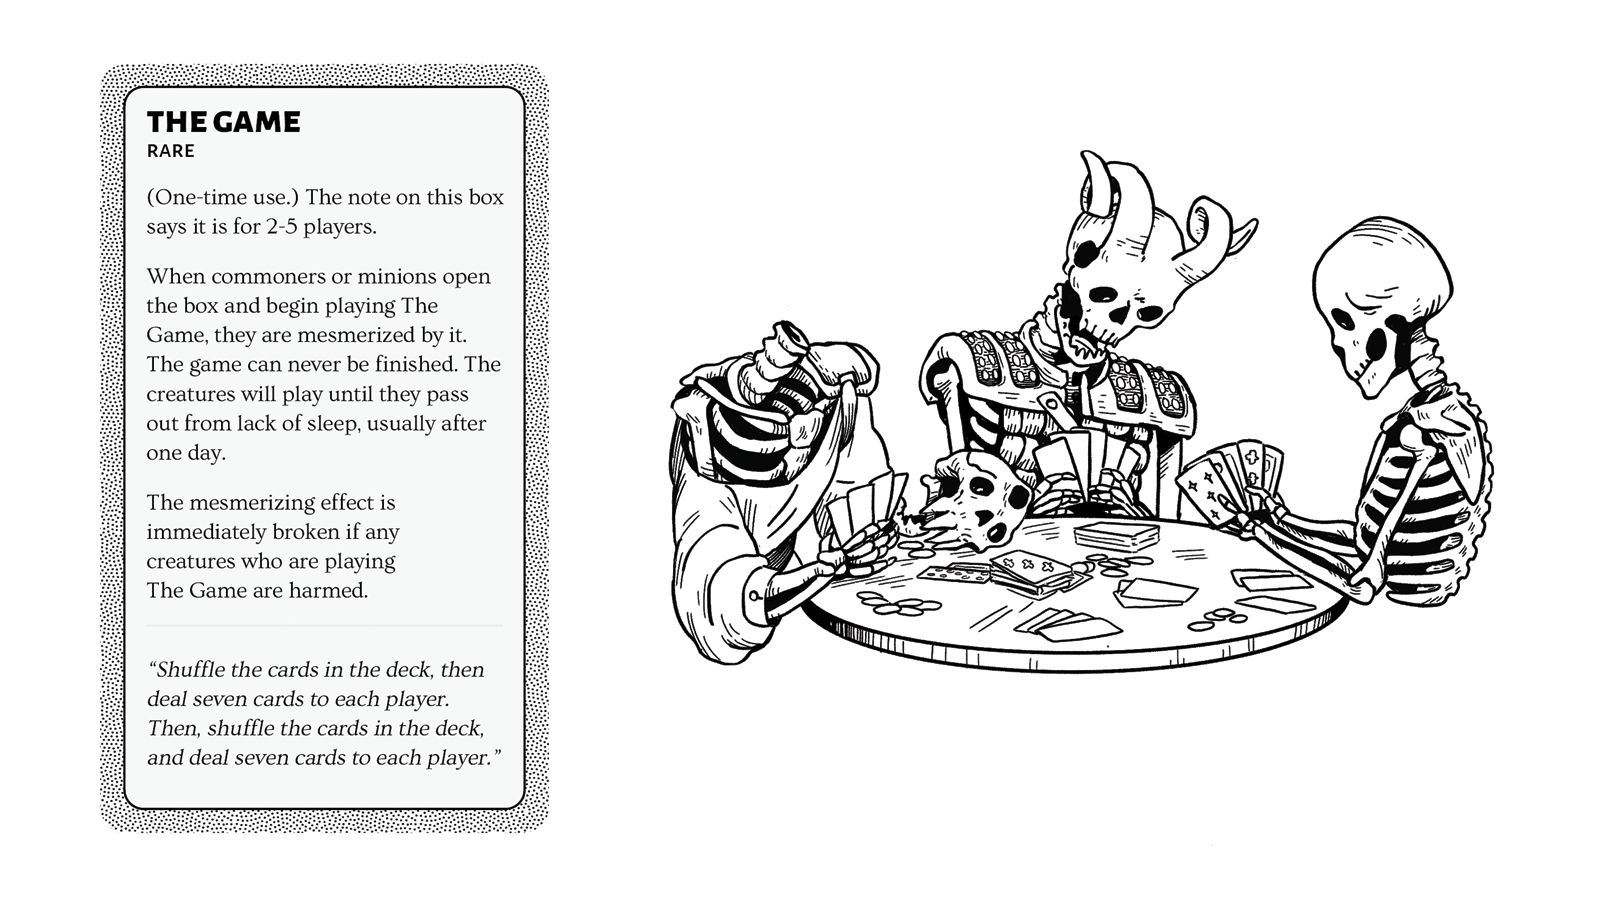 A group of skeletons sit around a table, playing an endless card game.